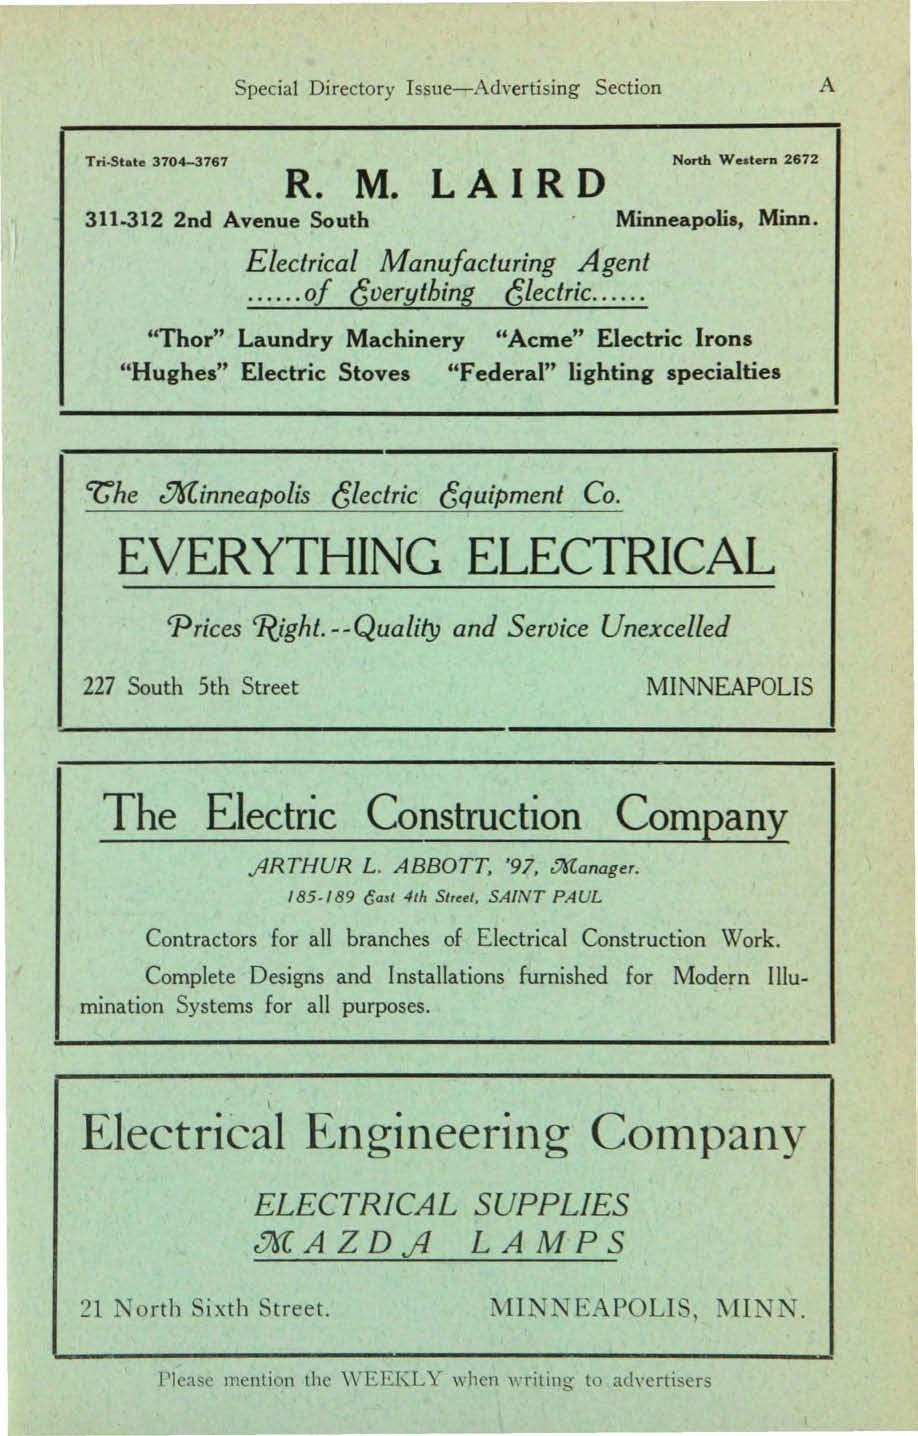 Special Directory Issue- Advertising Section A Tn-State 3704-3767 North We.terD 2672 R. M. L A I R D 311-312 2nd Avenue South Minneapolis, Minn. Electrical Manufacturing Agent... of everything electric.